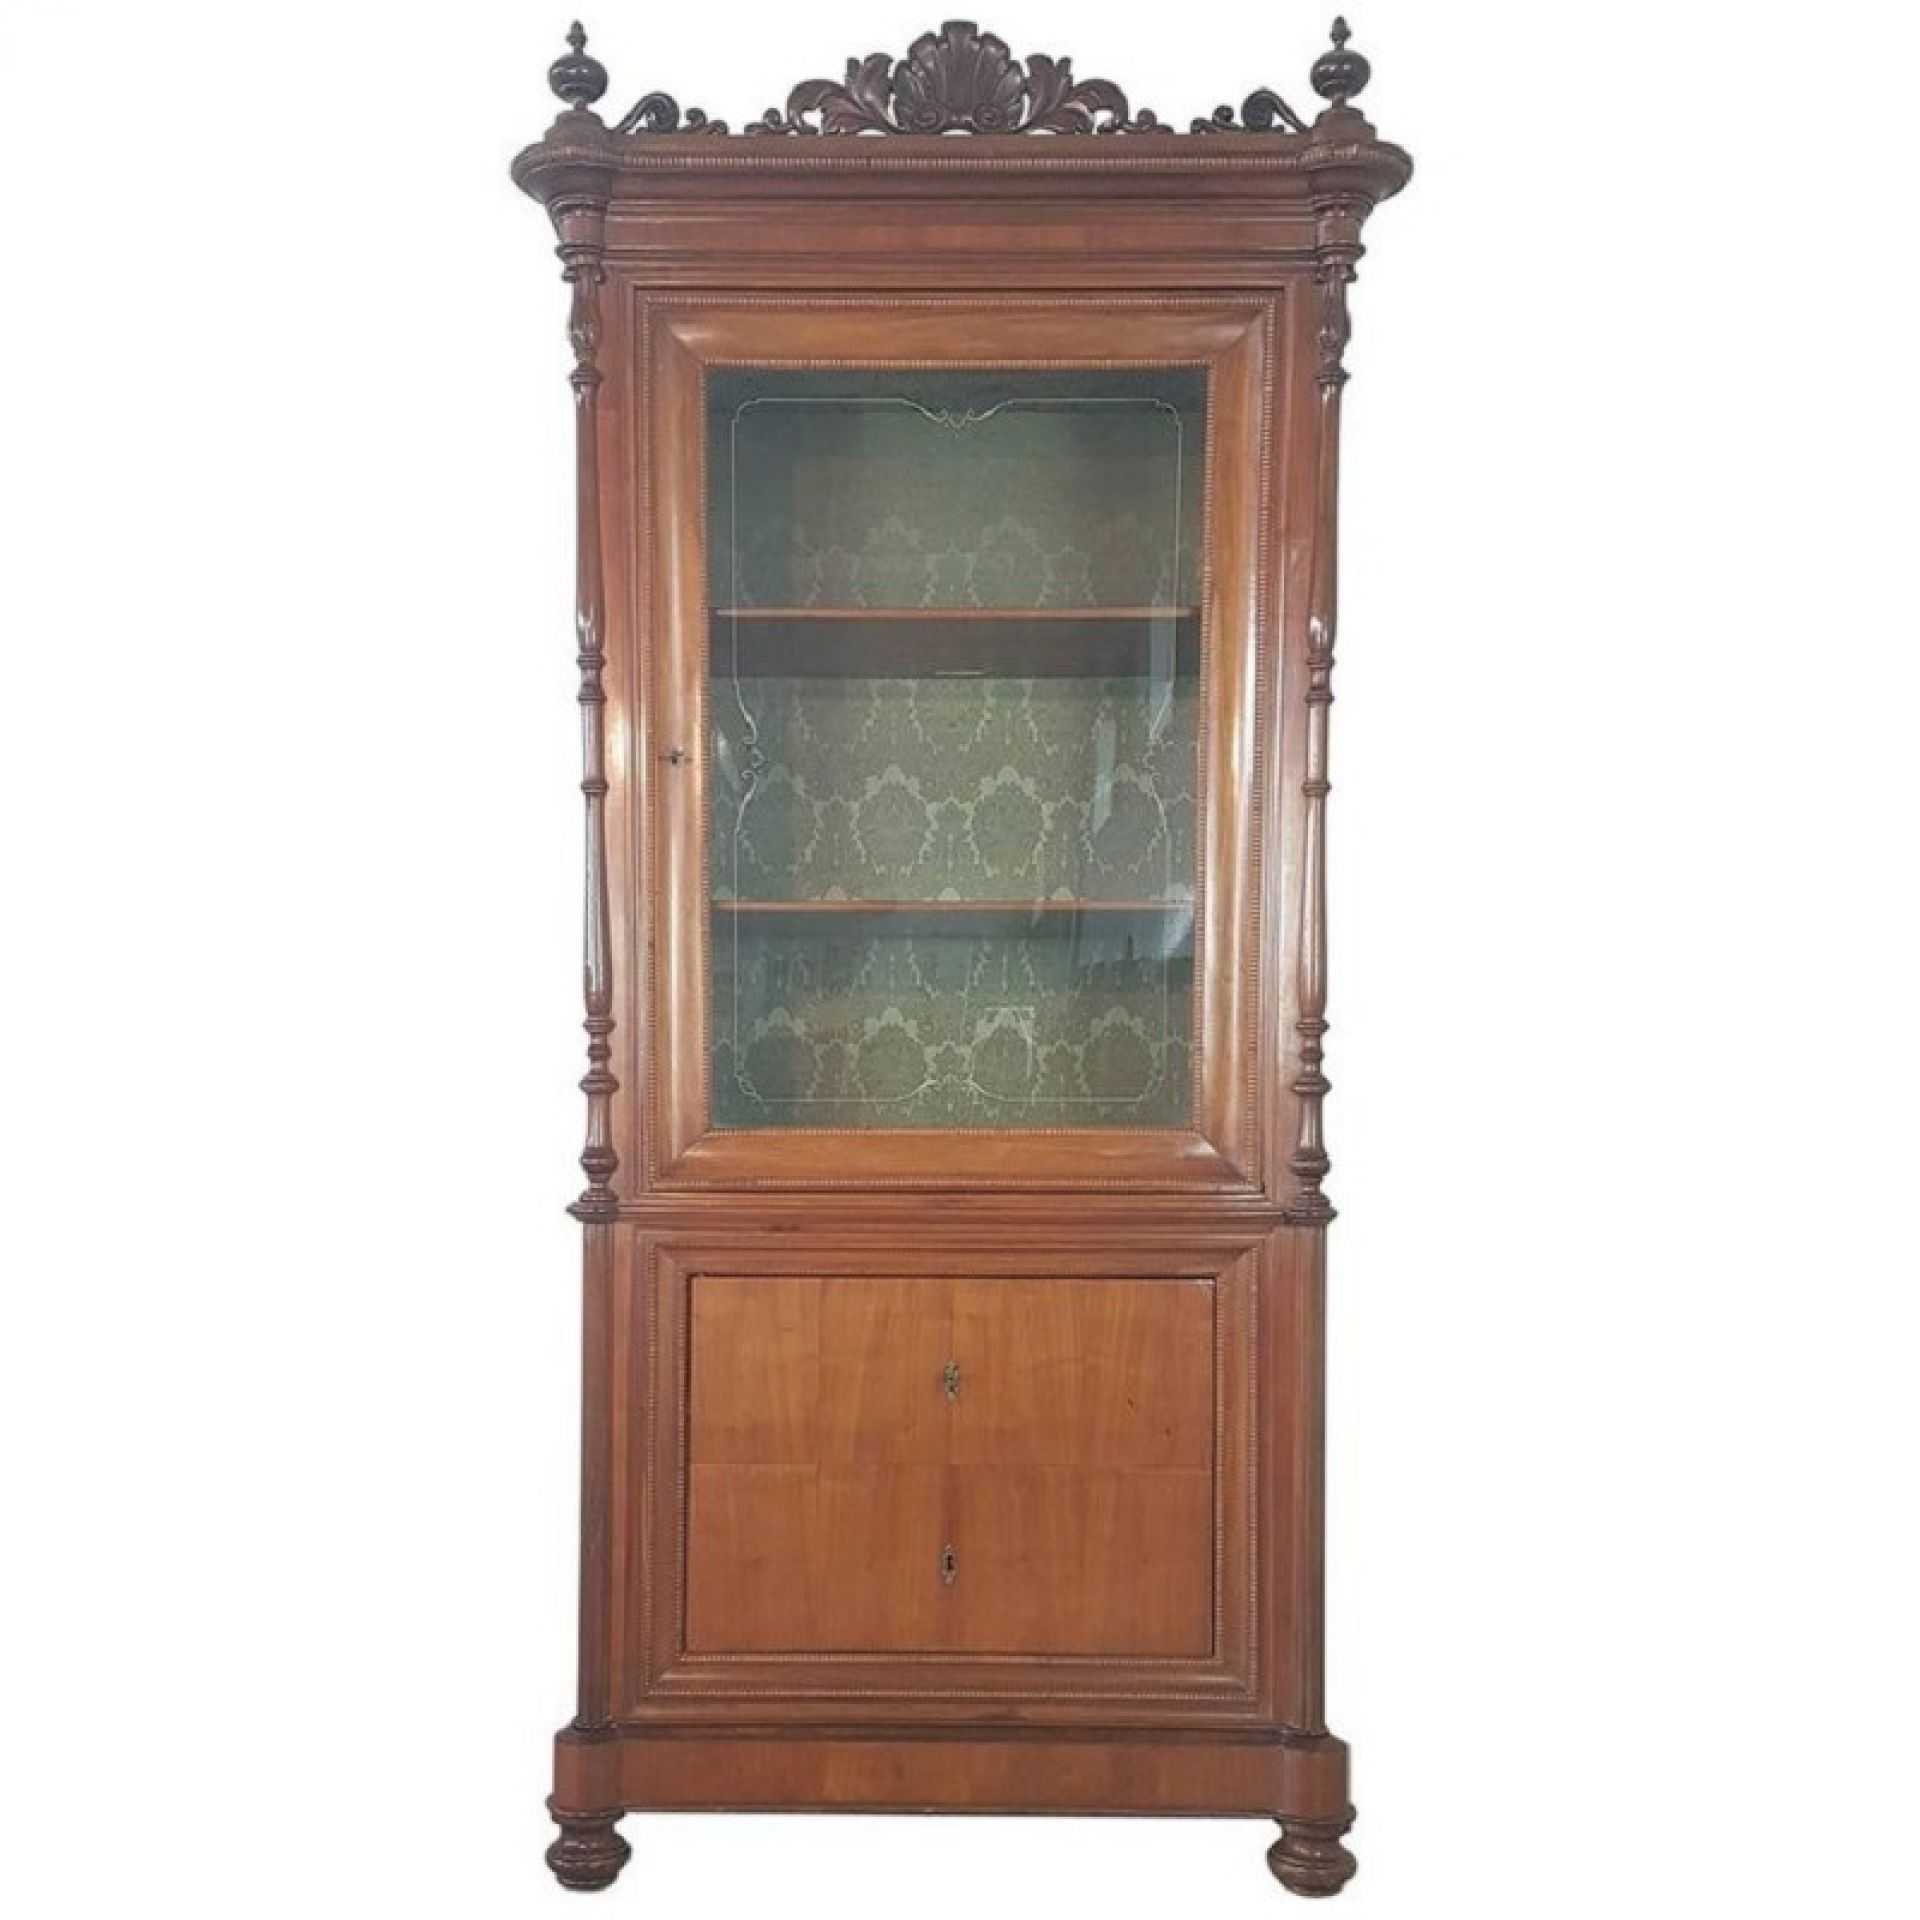 19th Century Italian Charles X Cherry Wood Cabinet